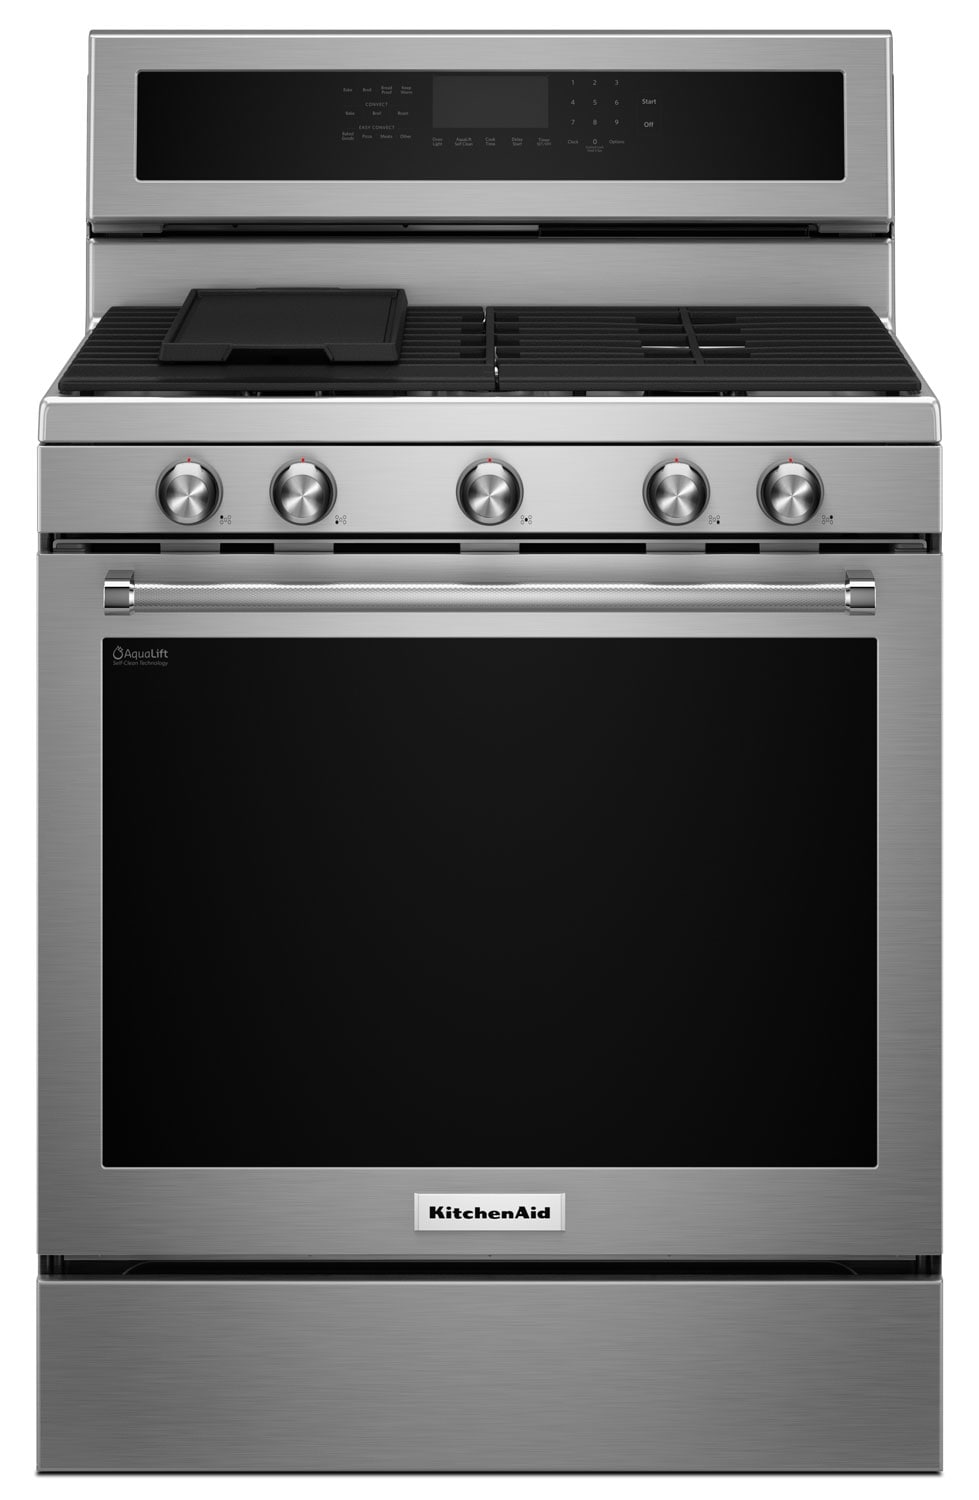 KitchenAid 5.8 Cu. Ft. Five-Burner Gas Convection Range- Stainless Steel